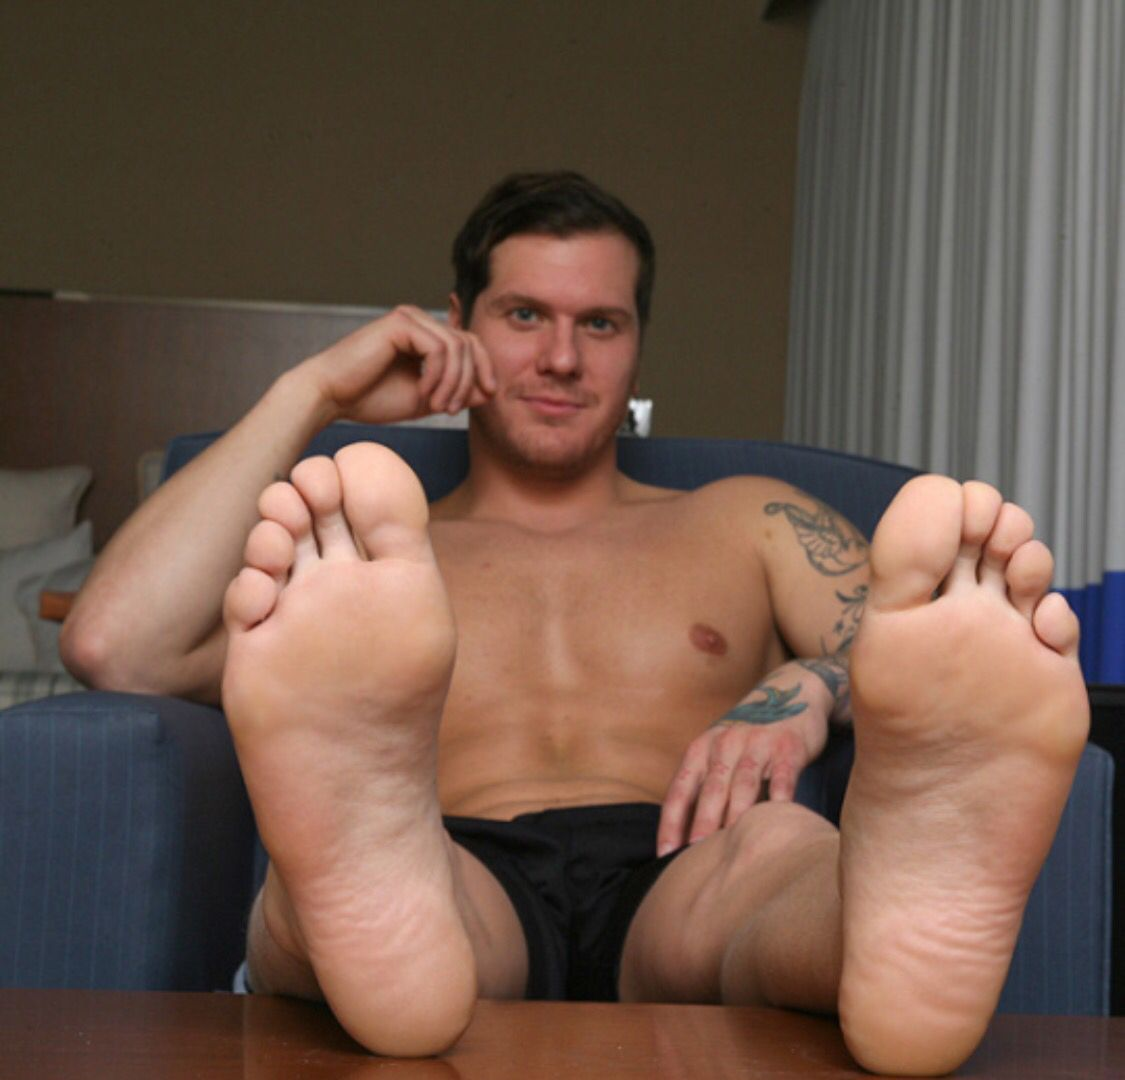 pingeo jenkins on feet/toes | pinterest | male feet and sexy men